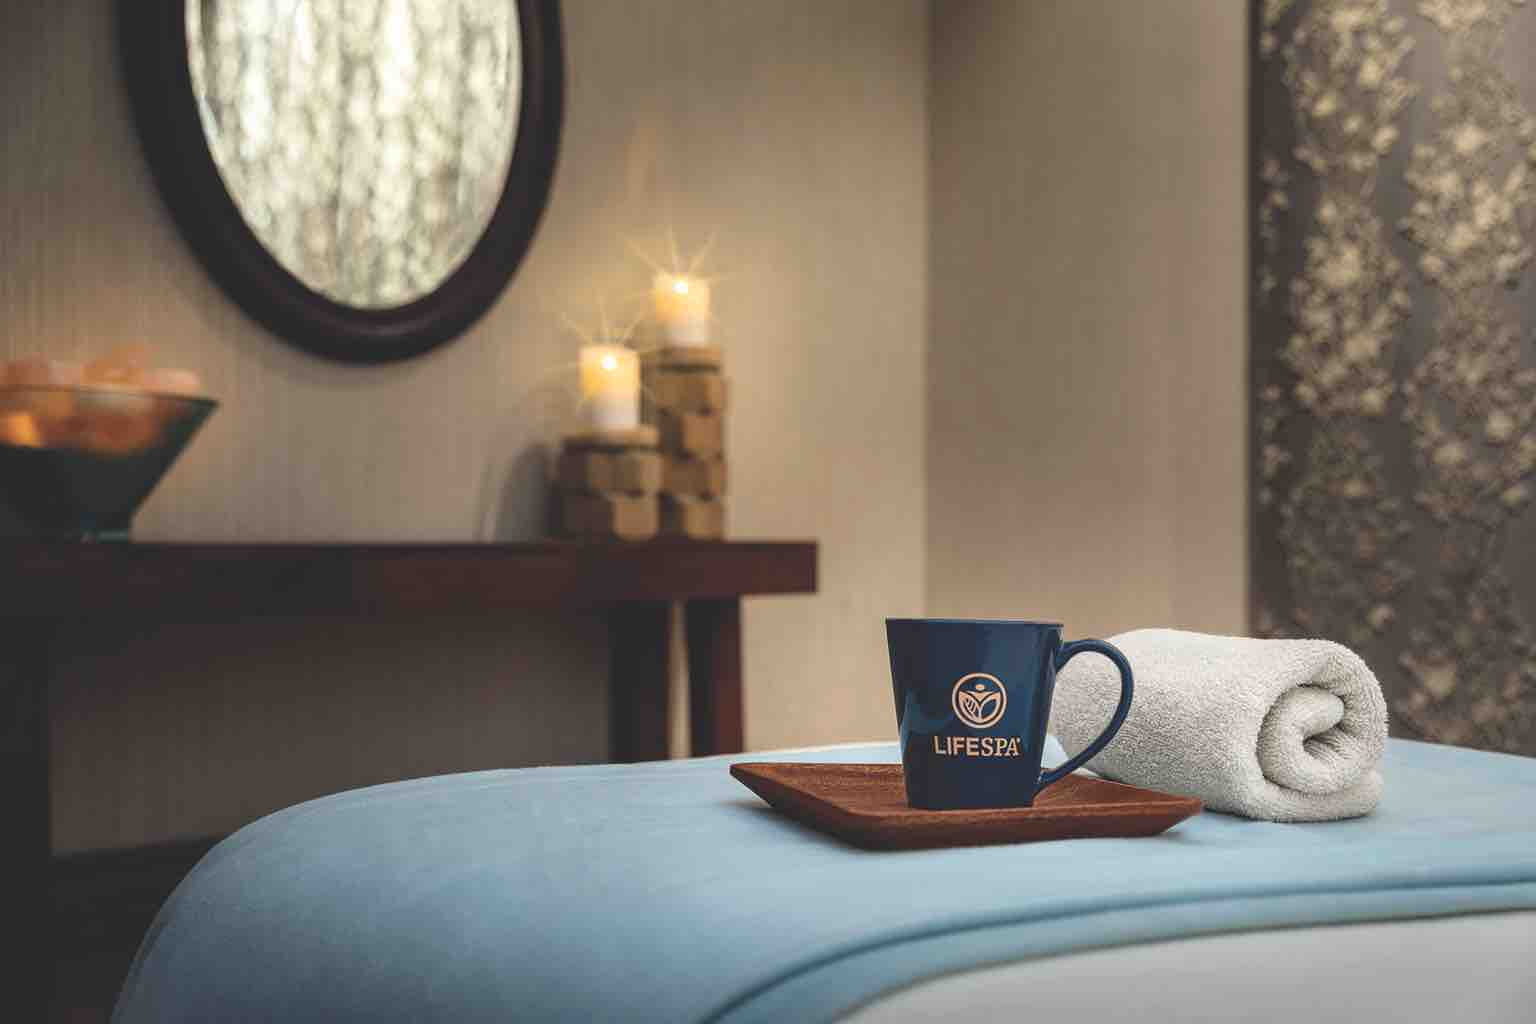 A rolled white towel and a mug with a LifeSpa logo sit atop a blanket-covered massage table